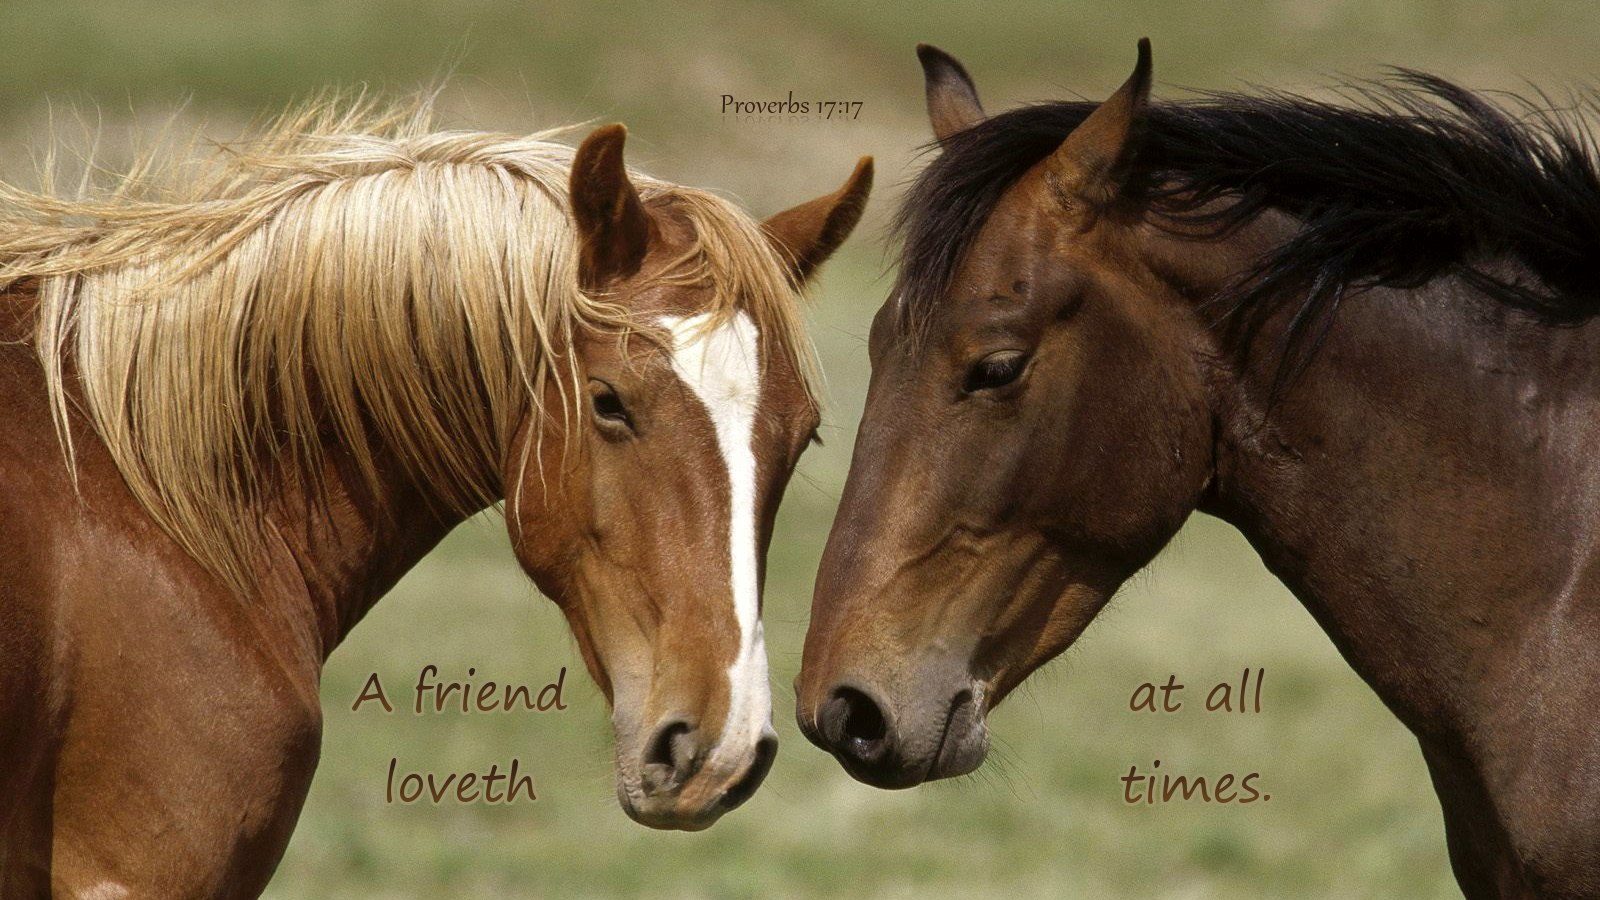 Beautiful   Wallpaper Horse Bible Verse - A-friend  Perfect Image Reference_17112.jpg